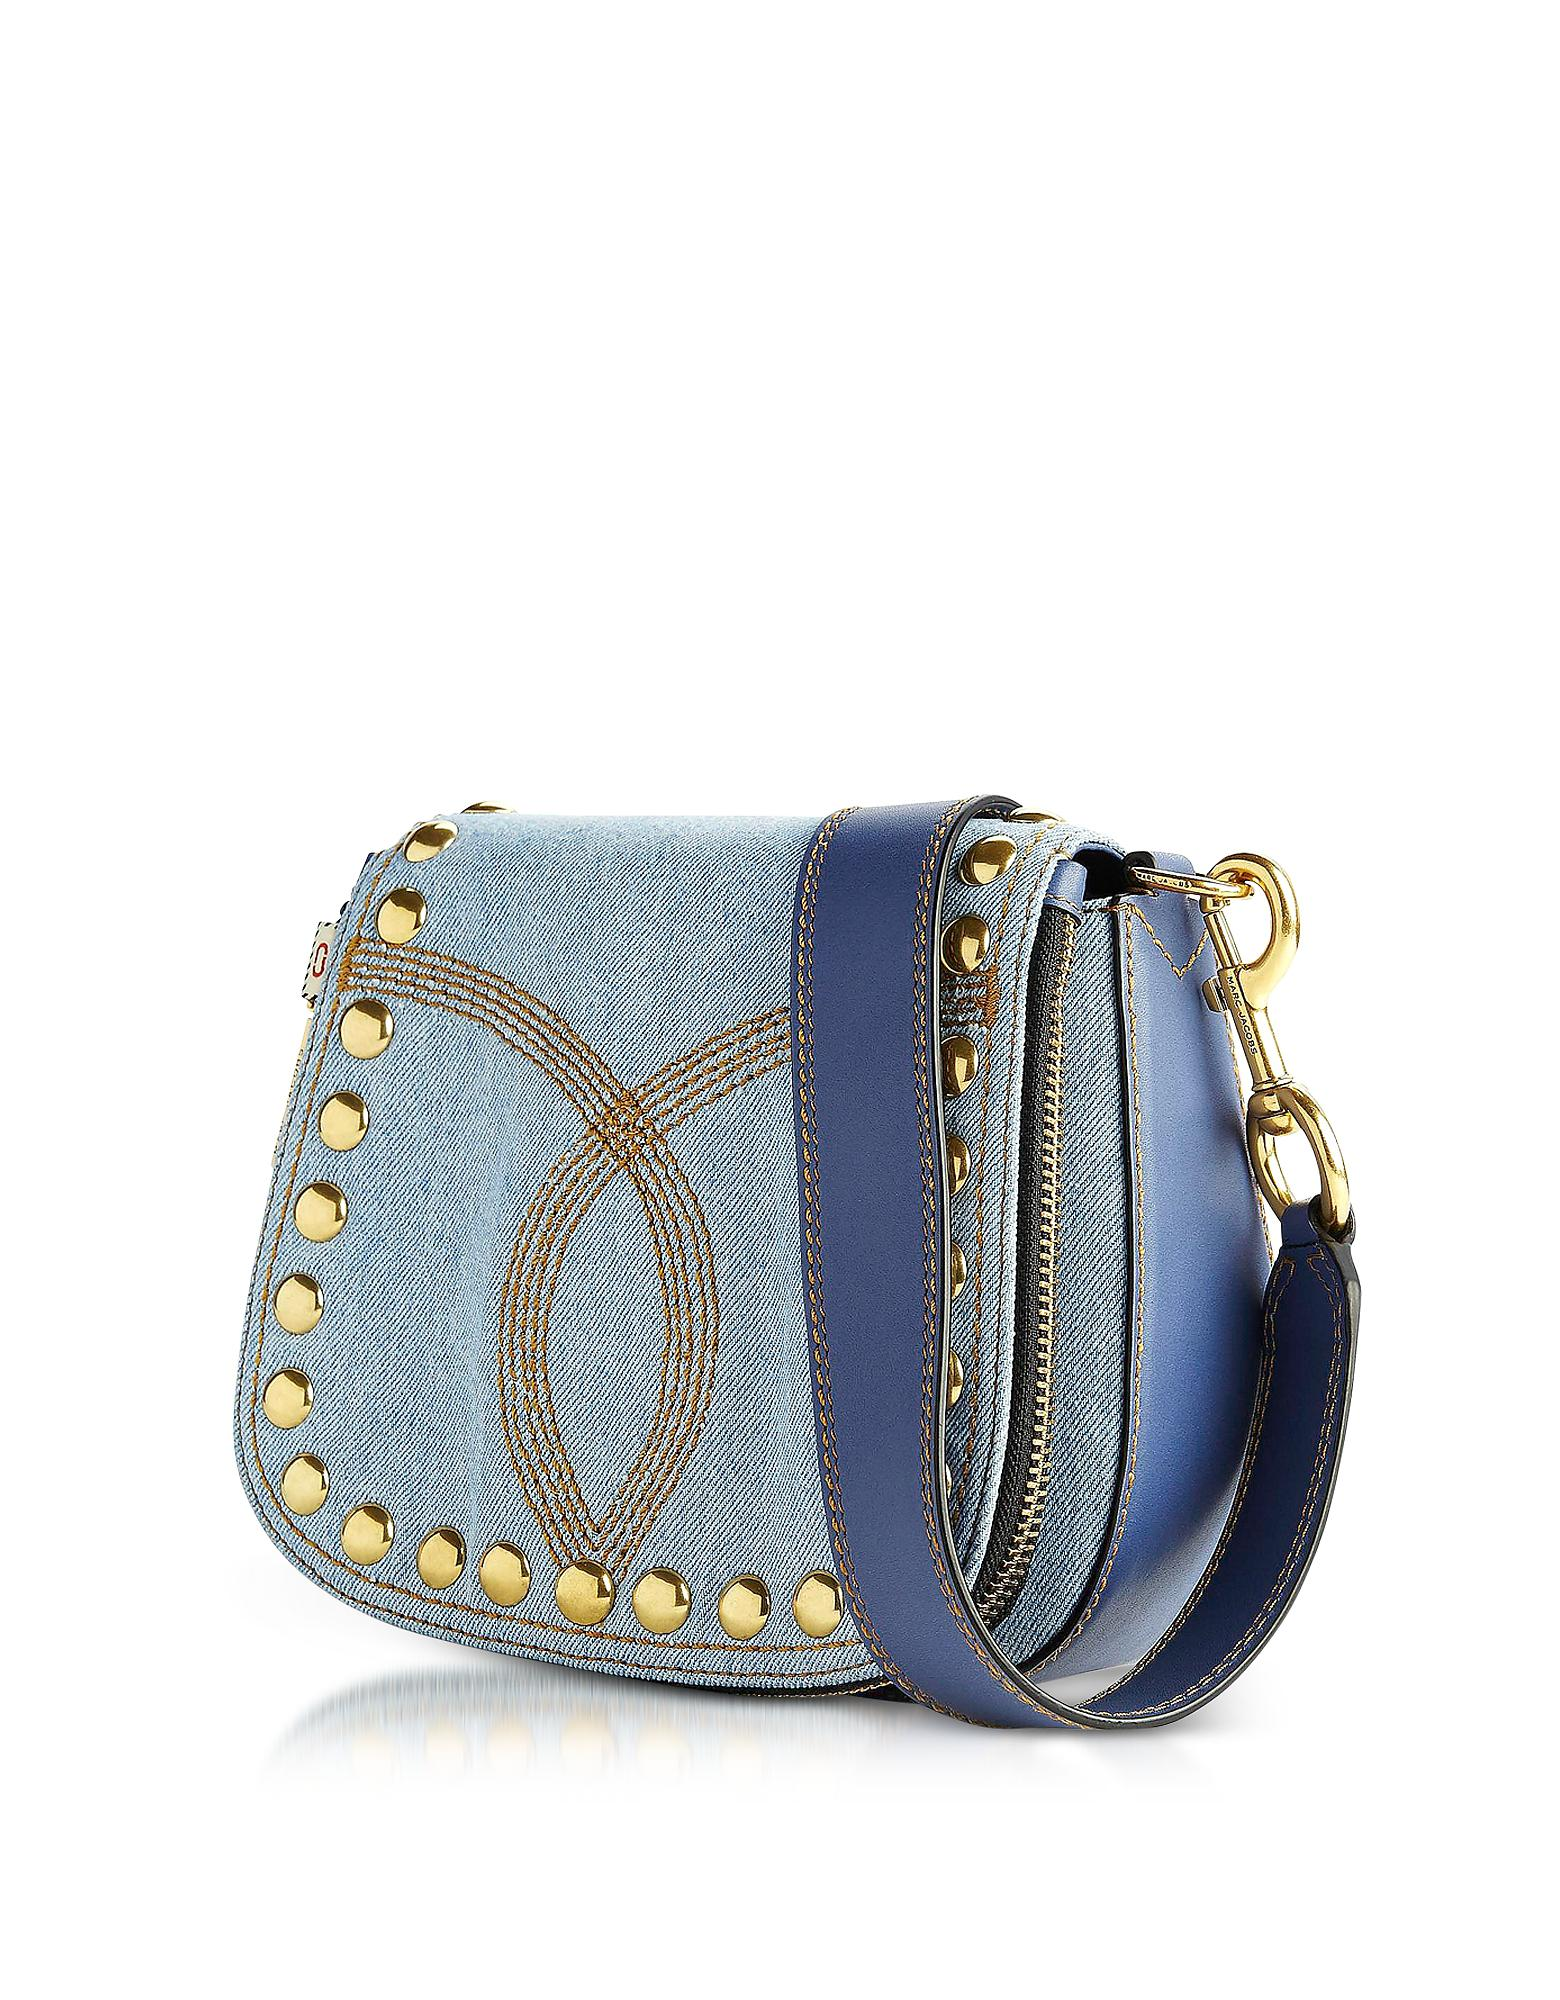 a8bd4a1c181a Gallery. Women s Saddle Bags Women s Marc Jacobs Nomad ...